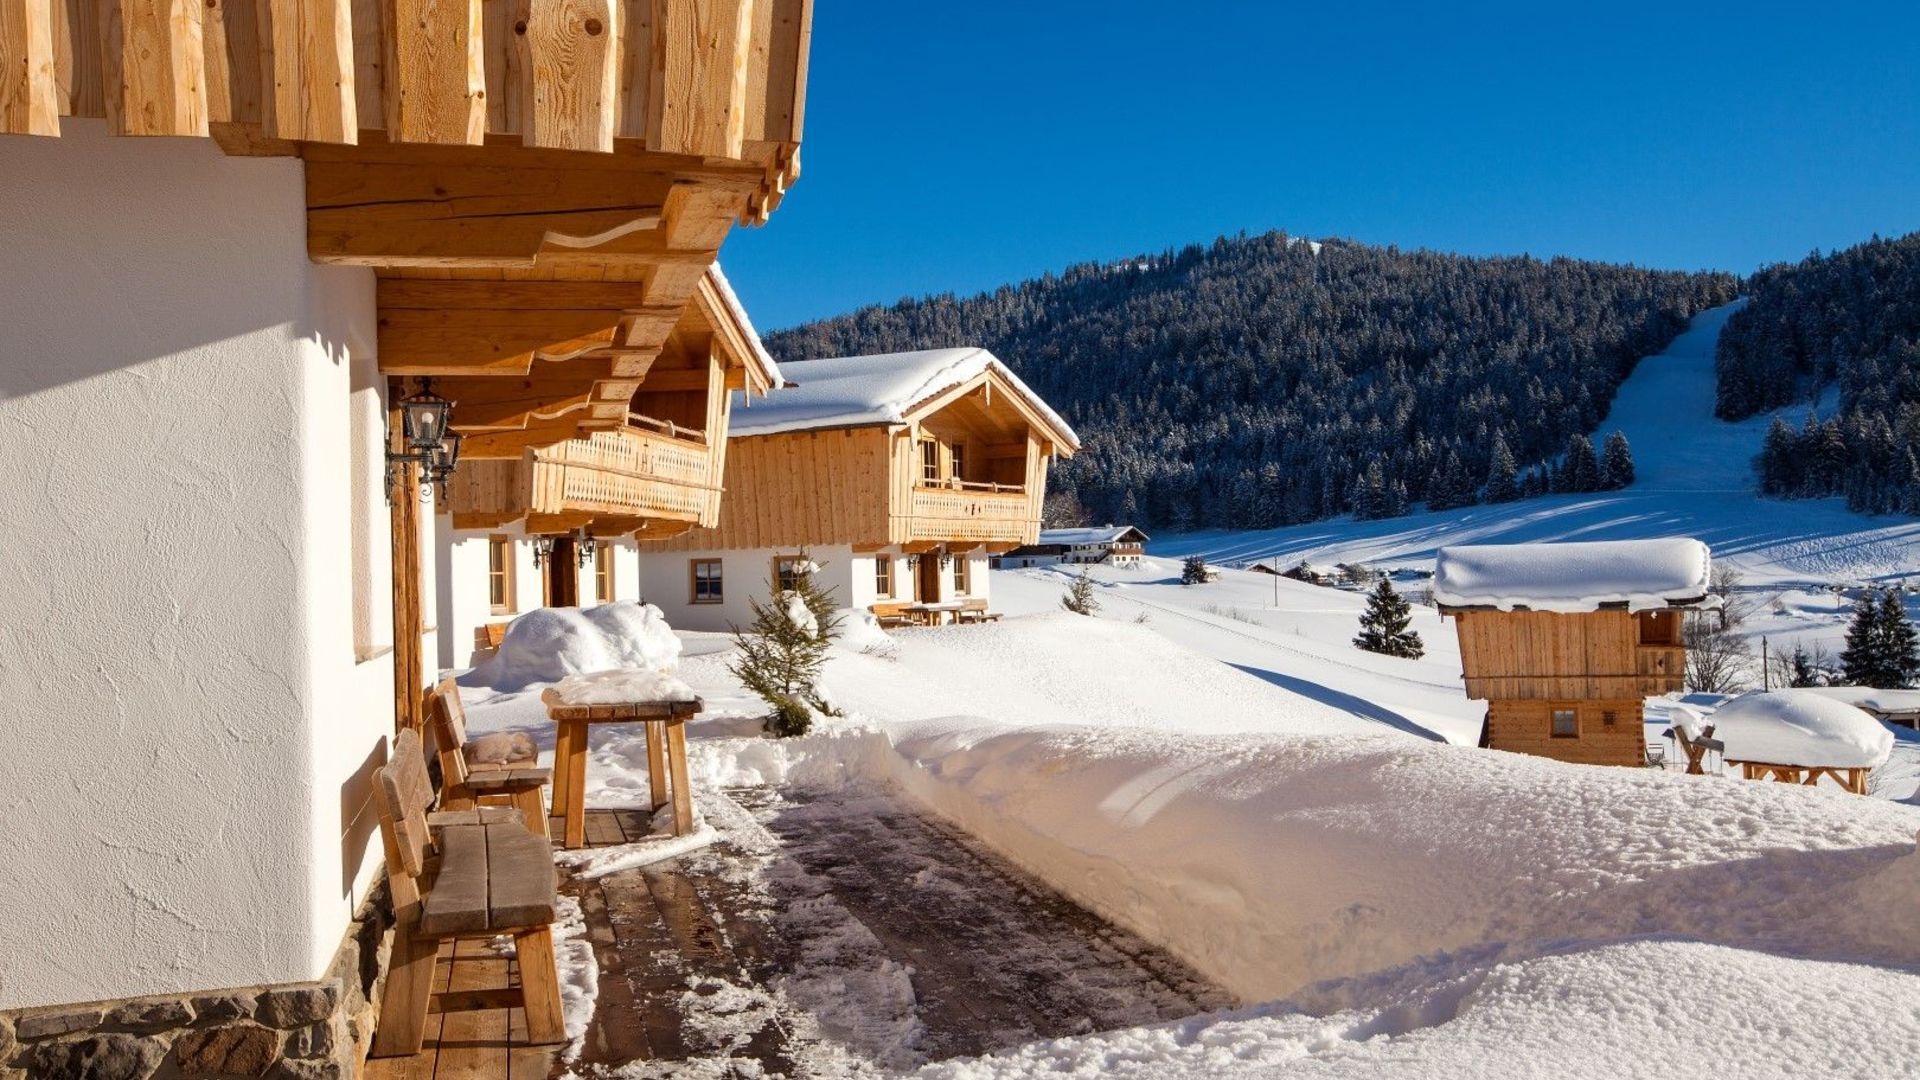 Chalets im Winter